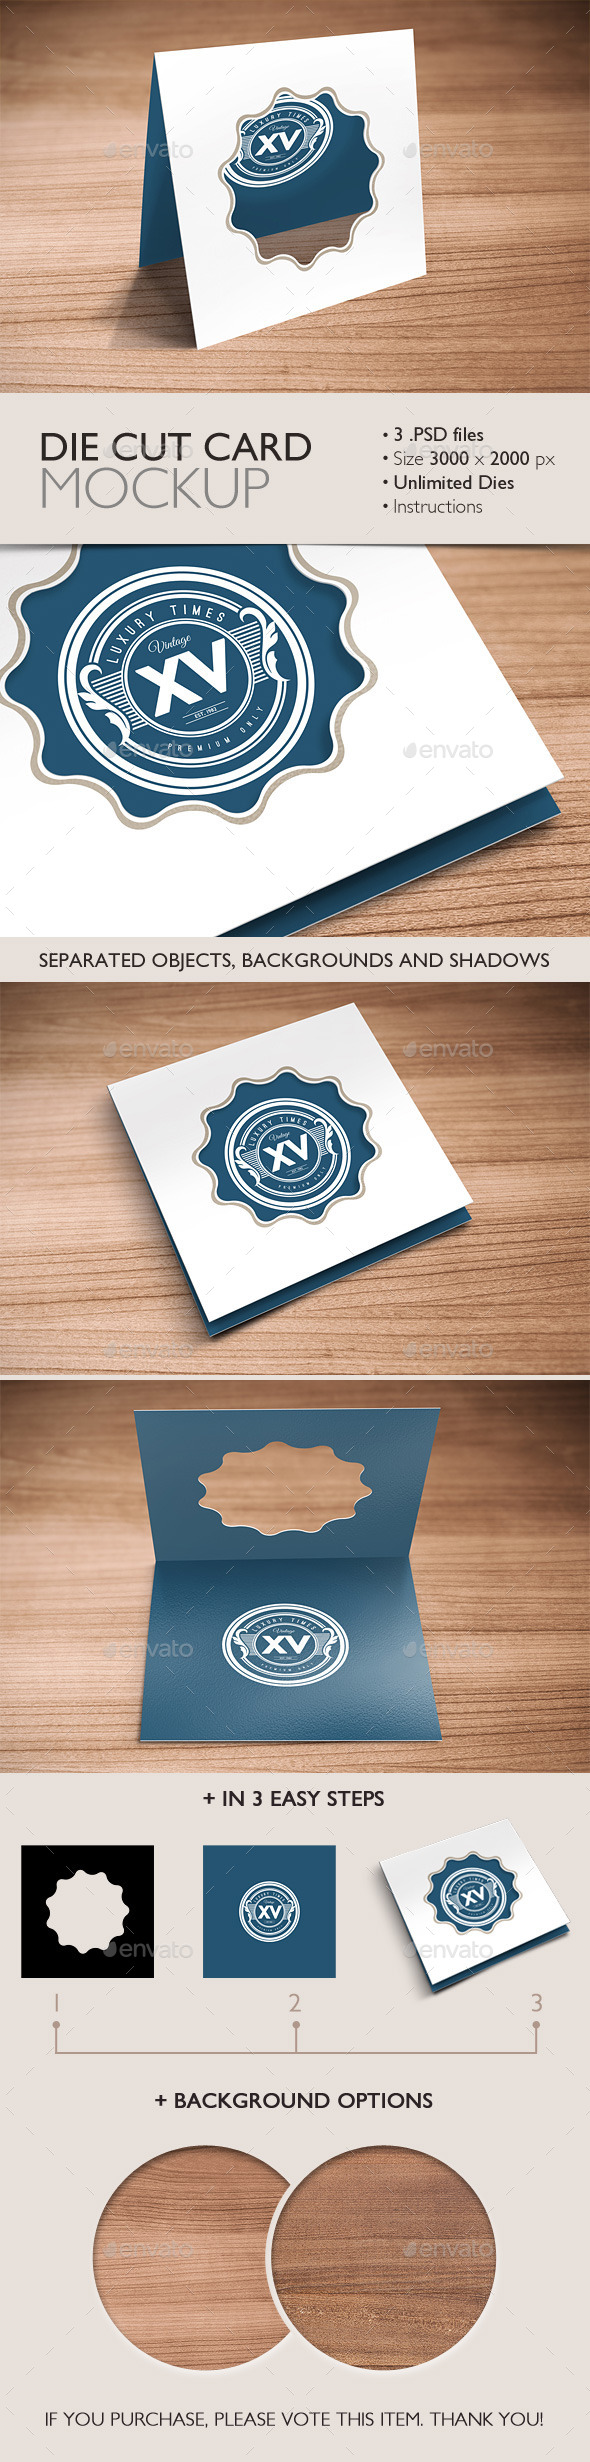 GraphicRiver Die Cut Card Mockup 9598594